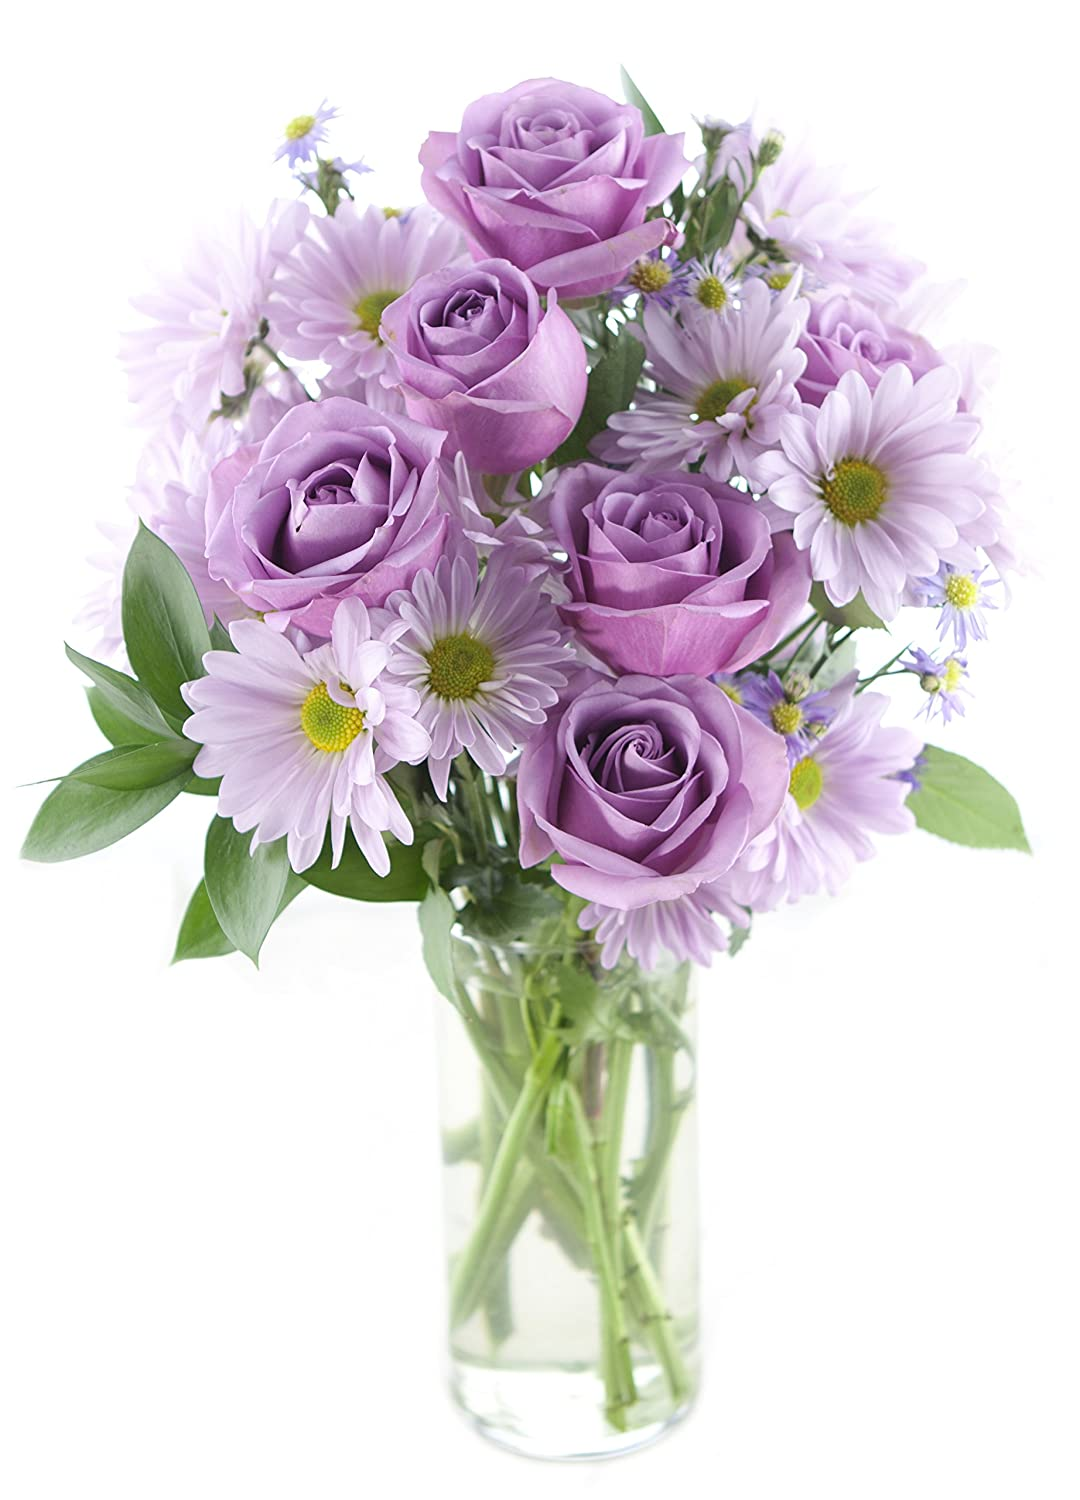 Amazon purple passion bouquet of 6 purple roses 6 purple amazon purple passion bouquet of 6 purple roses 6 purple daisy poms 3 purple asters and lush greens with vase grocery gourmet food izmirmasajfo